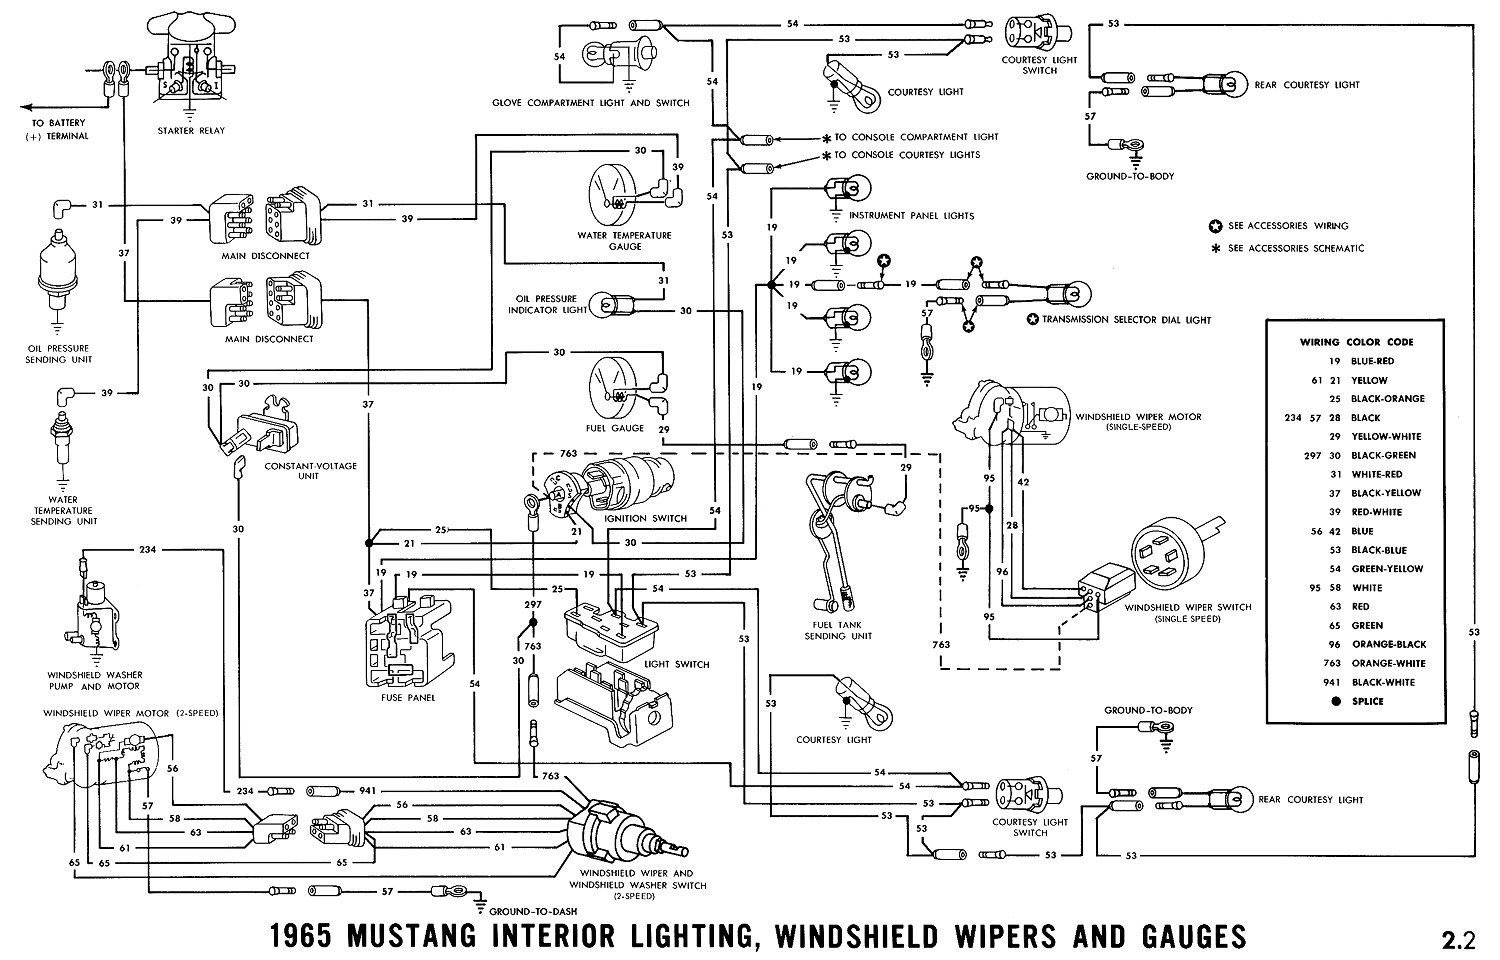 1965g 1965 mustang wiring diagrams average joe restoration 1965 mustang turn signal wiring diagram at crackthecode.co